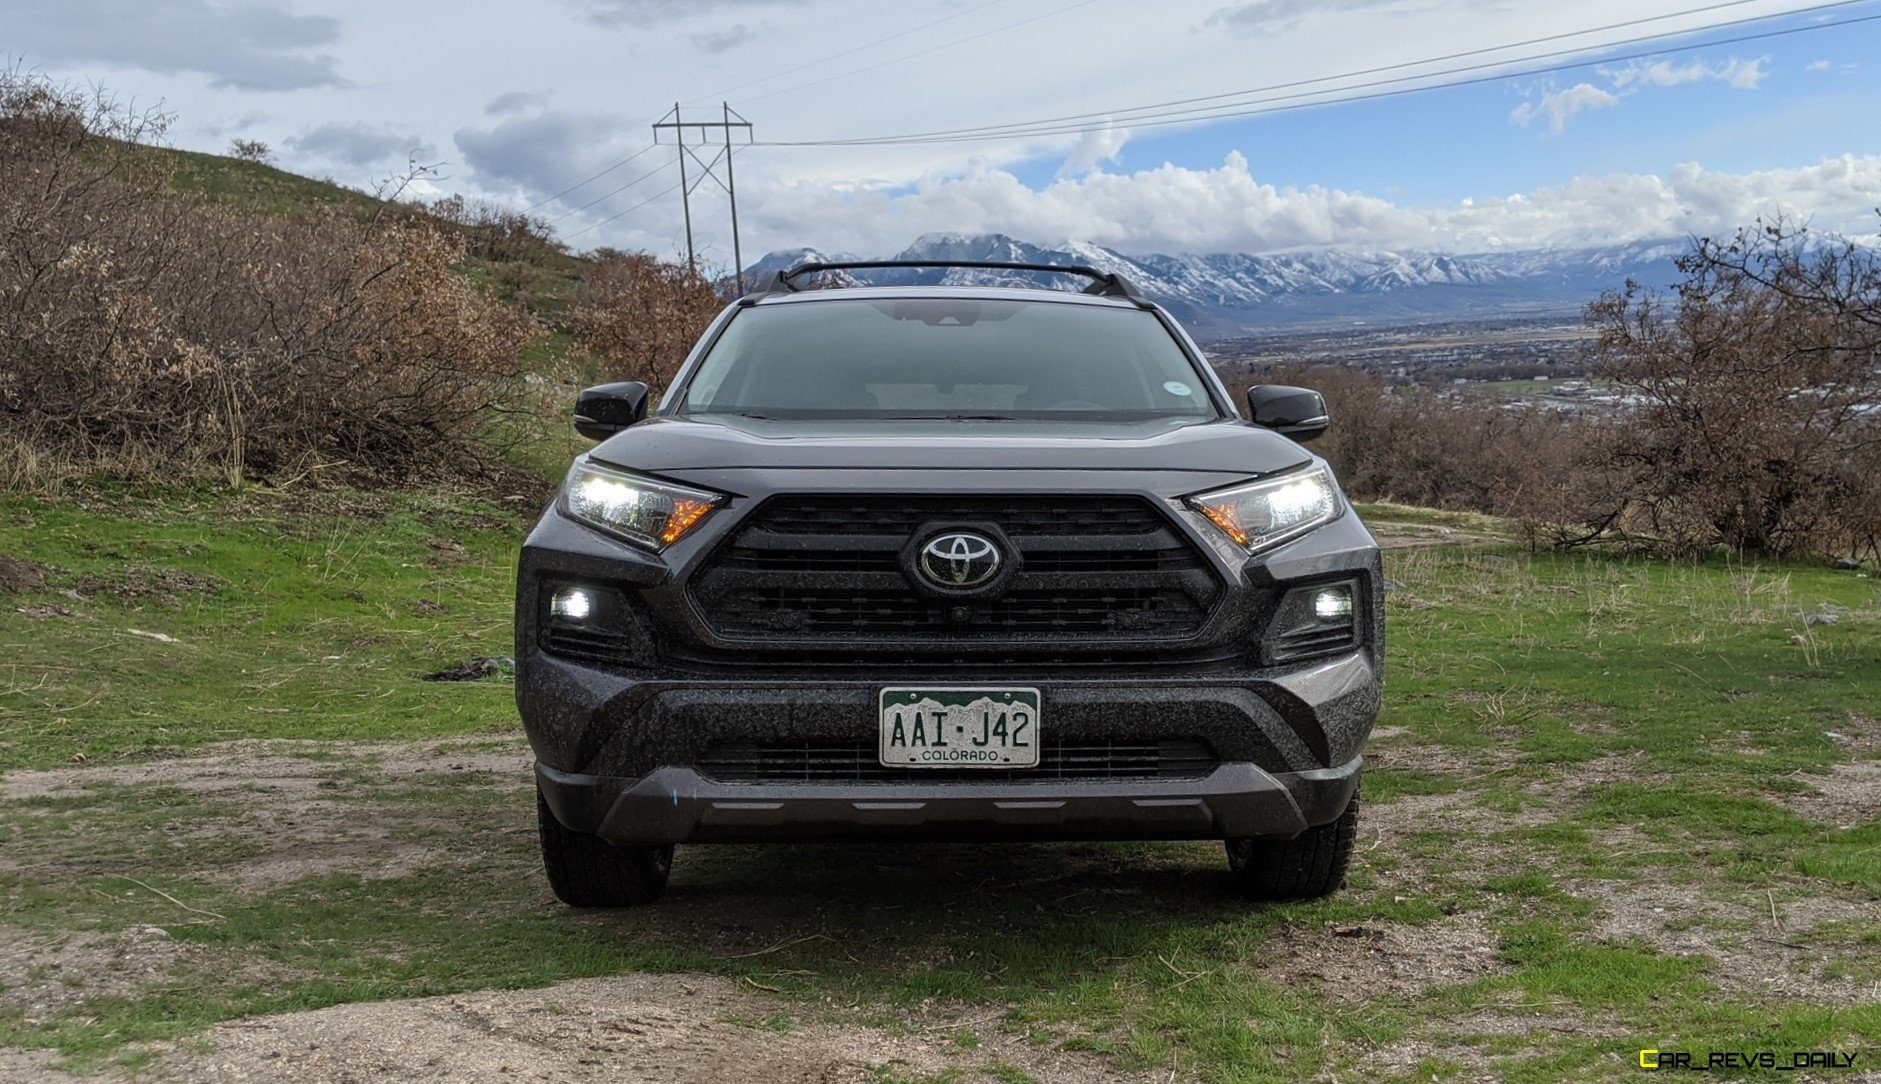 2020 Rav4 Trd Off Road Off Pavement Drive Review By Matt Barnes Car Shopping Car Revs Daily Com